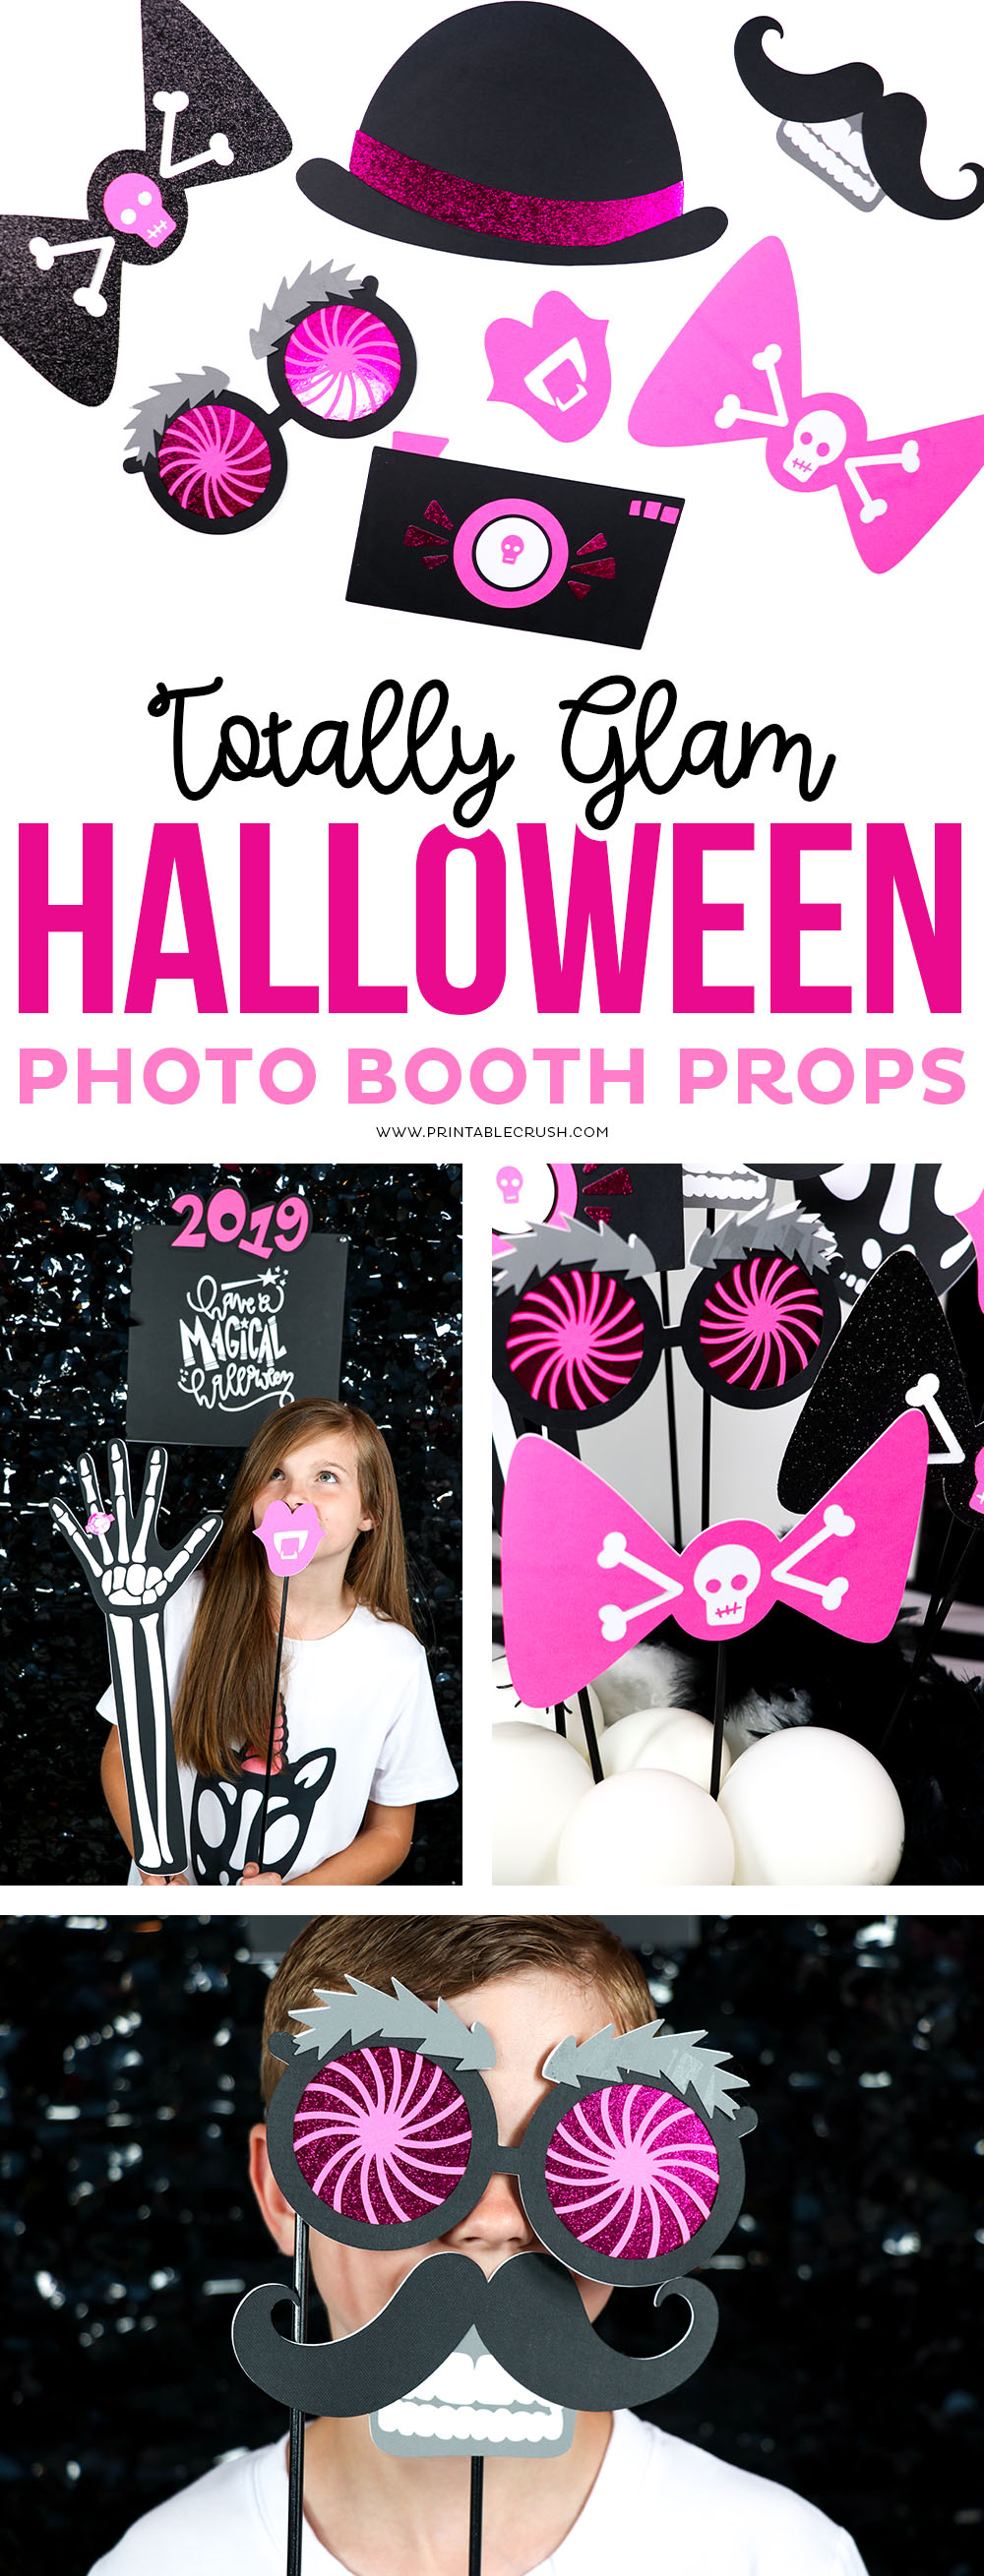 Learn to make these Glam Halloween Photo Booth Props! From skeleton unicorns to vampire lips and skeletons with mustaches...you'll create a Halloween to remember! #halloweenphotoprops #halloweenphotobooth #halloweenideas #halloweencrafts #cricutcrafts #cricuthalloween #cricuthalloweenideas #papercrafts #halloweenpapercrafts #photobooth via @printablecrush